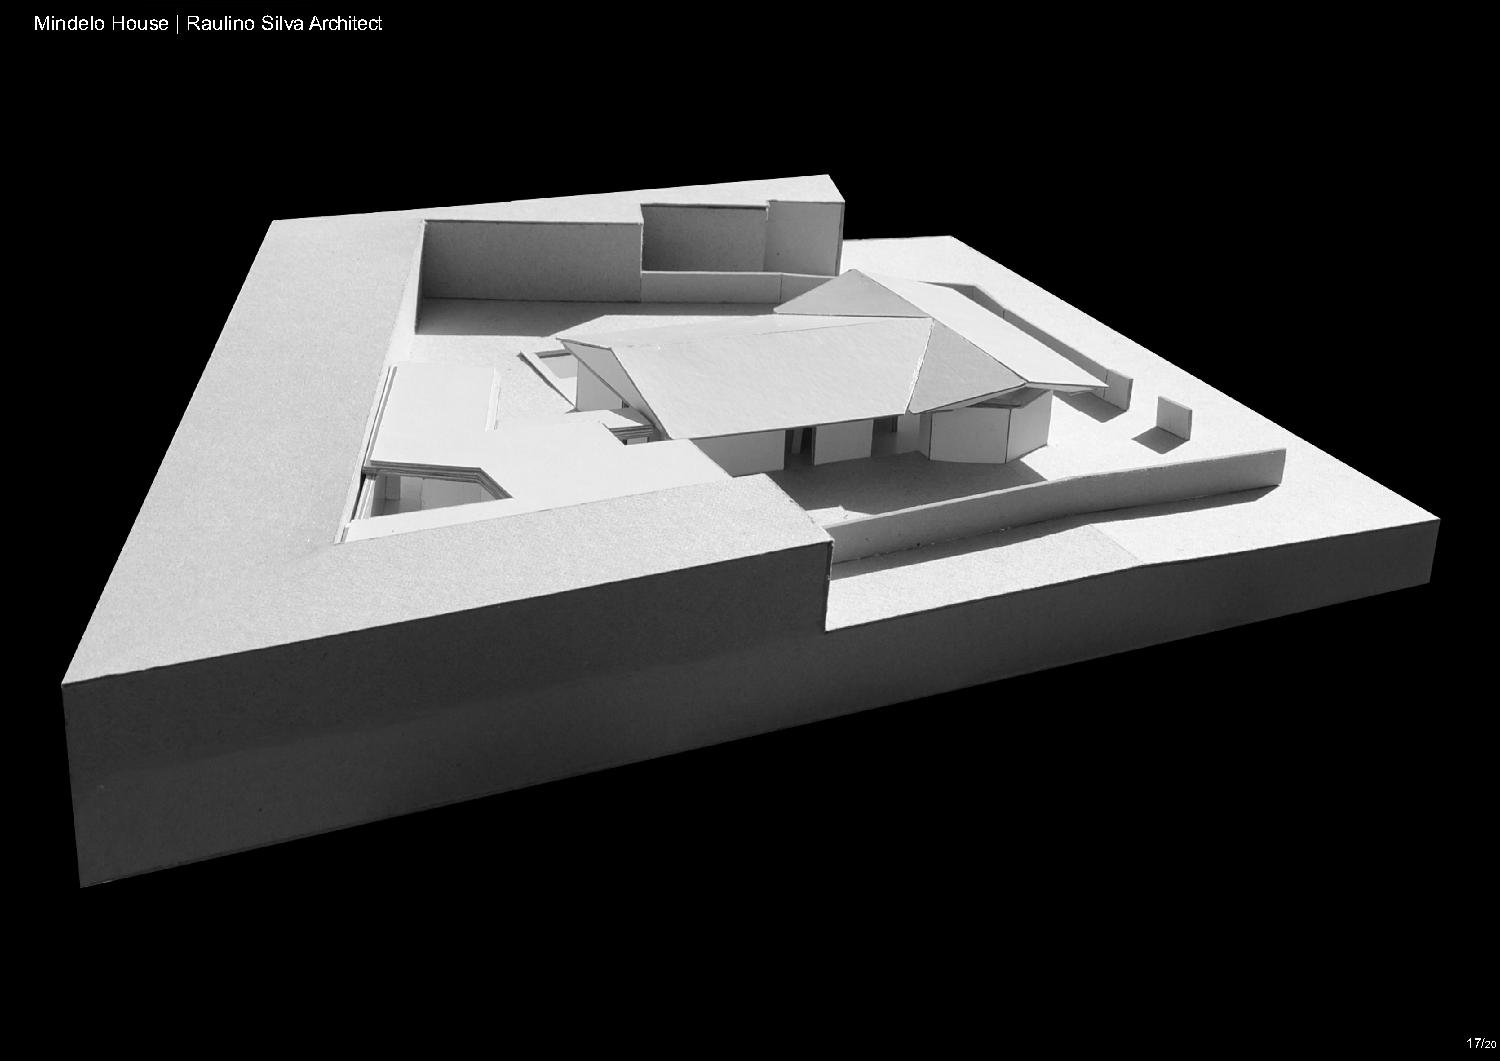 Model Raulino Silva Architect}